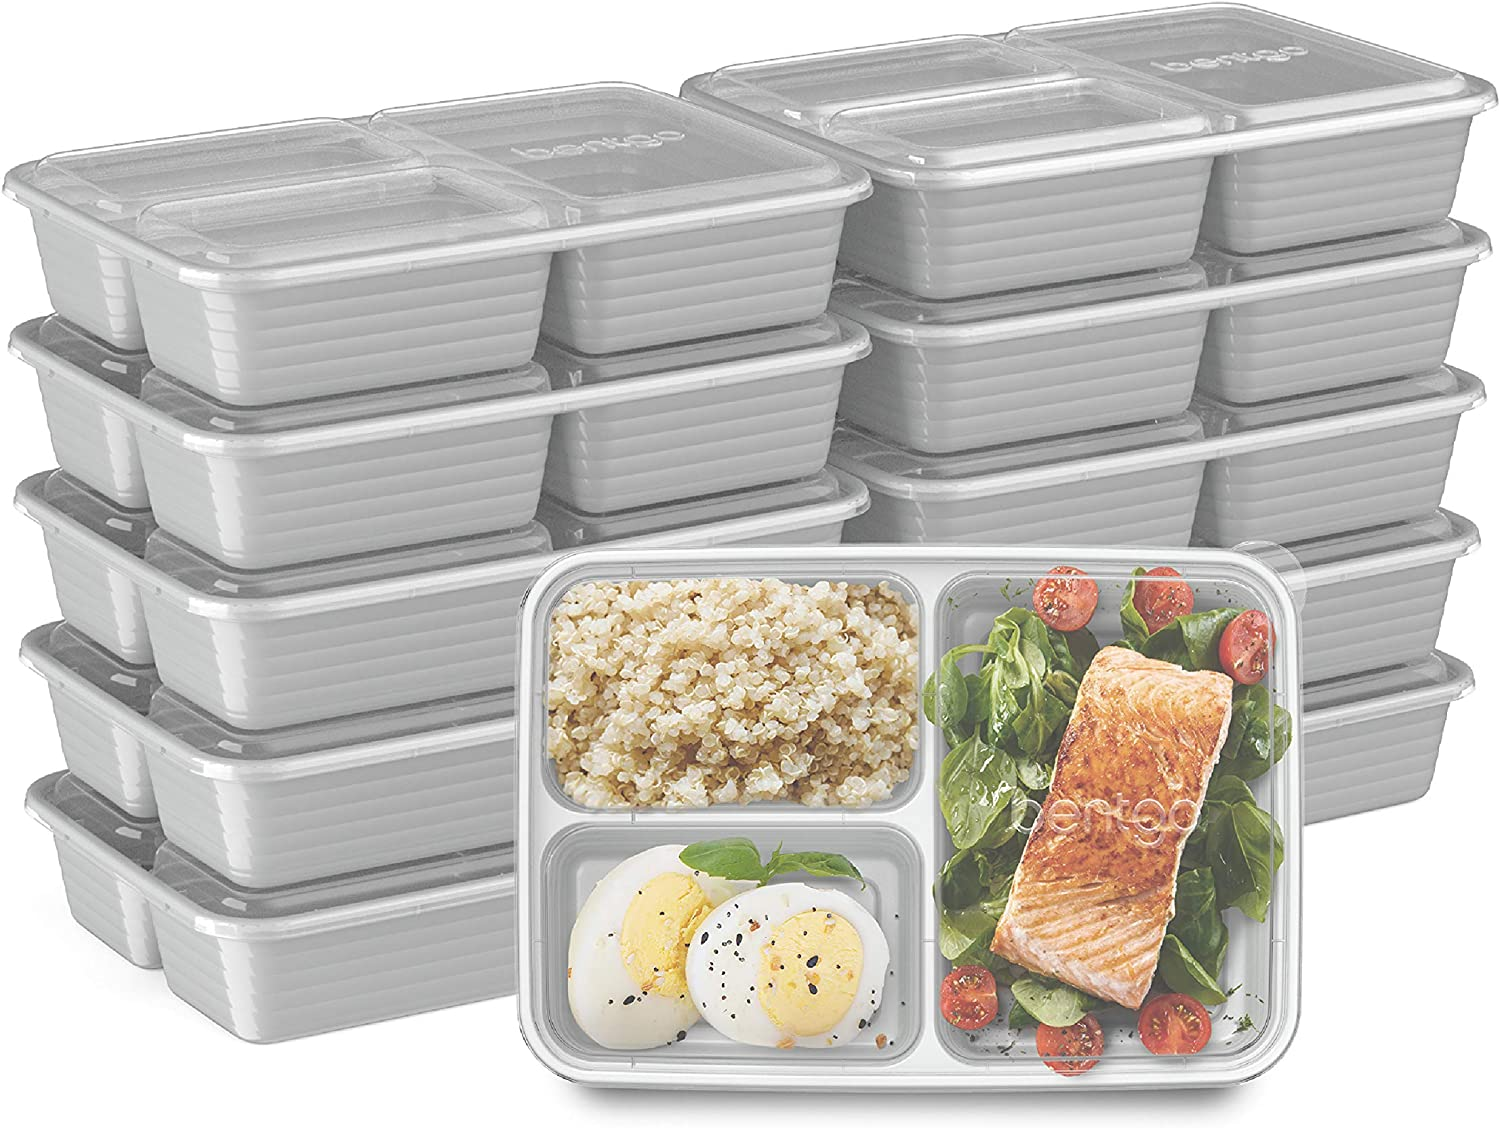 Bentgo Prep 3-Compartment Meal-Prep Containers with Custom-Fit Lids - Microwaveable, Durable, Reusable, BPA-Free, Freezer and Dishwasher Safe Food Storage Containers - 10 Trays & 10 Lids (Silver)